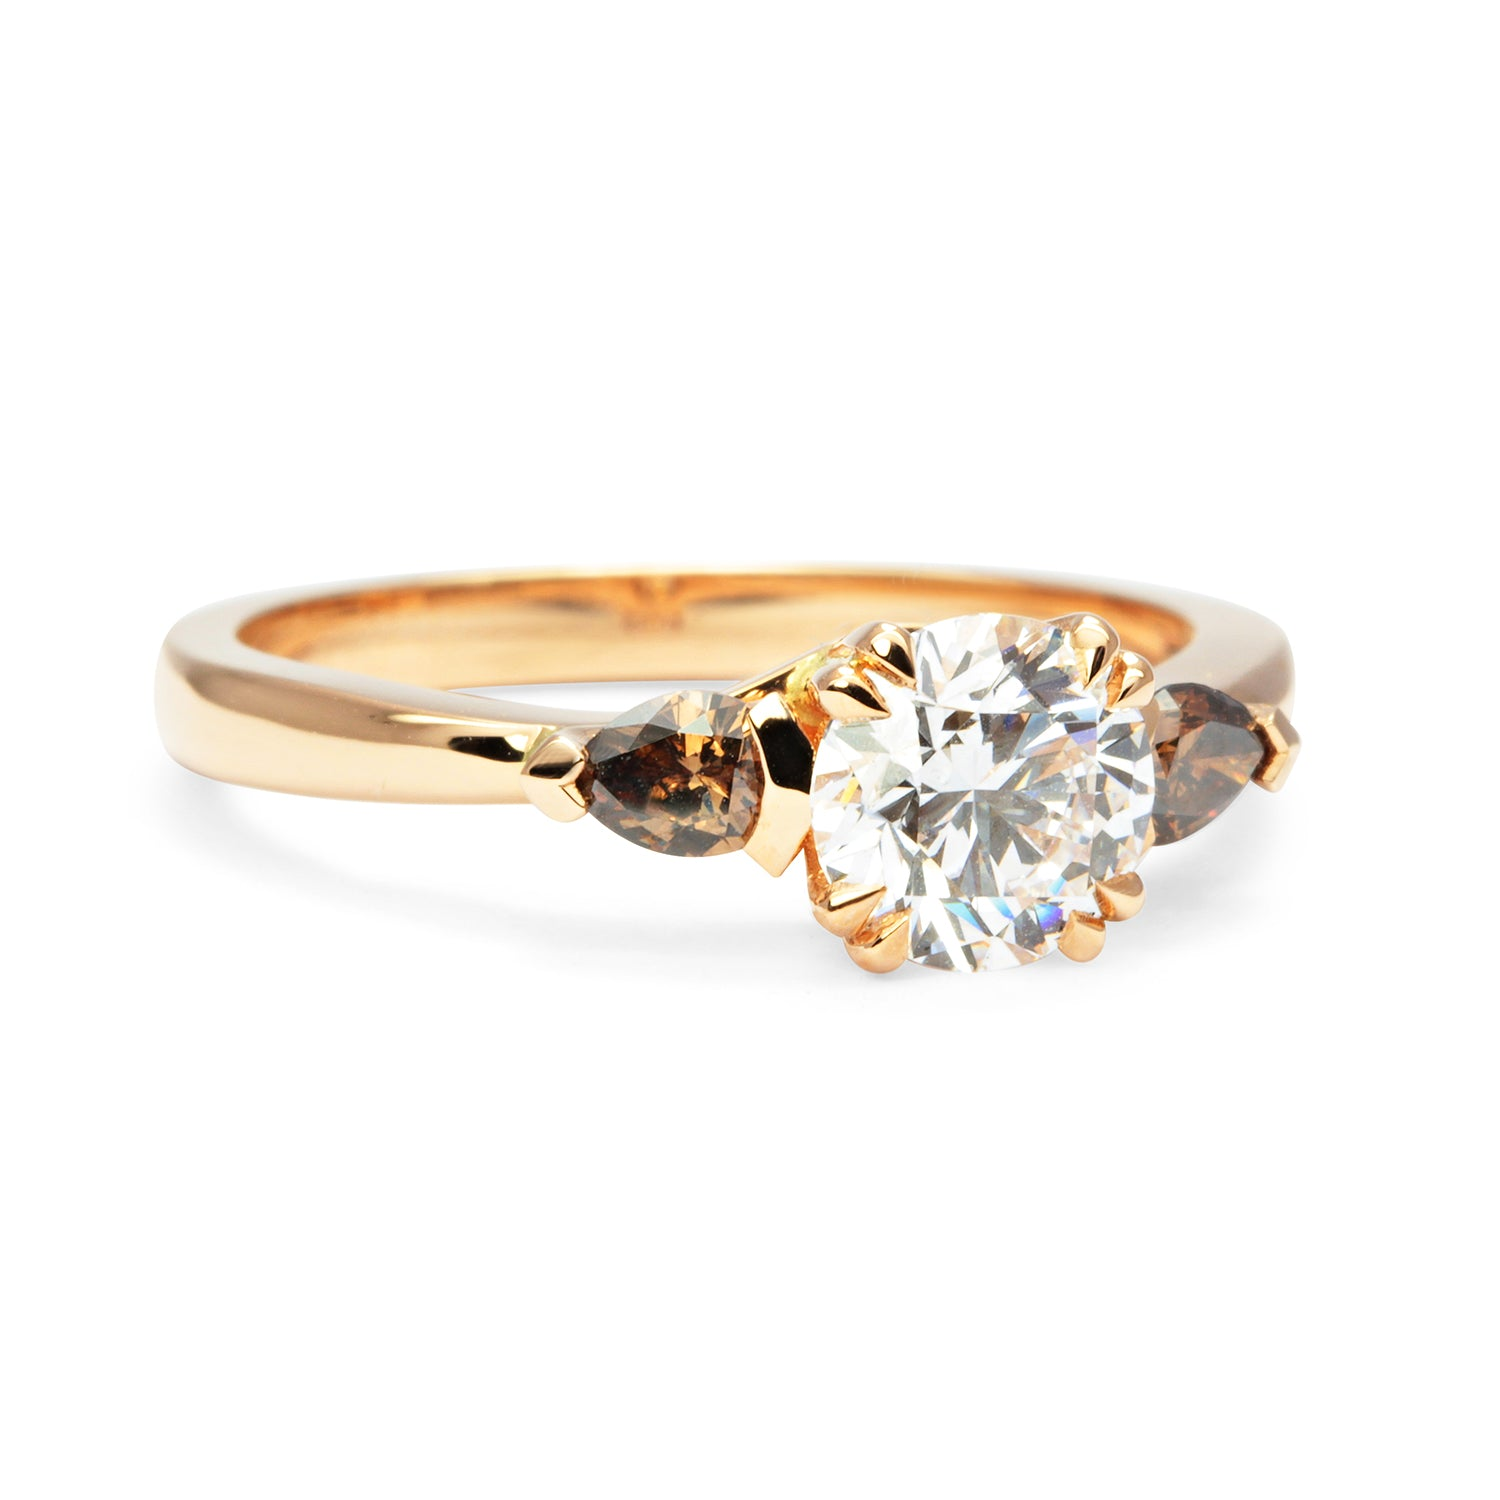 Bespoke Chris Ethical Diamond Trilogy Engagement Ring